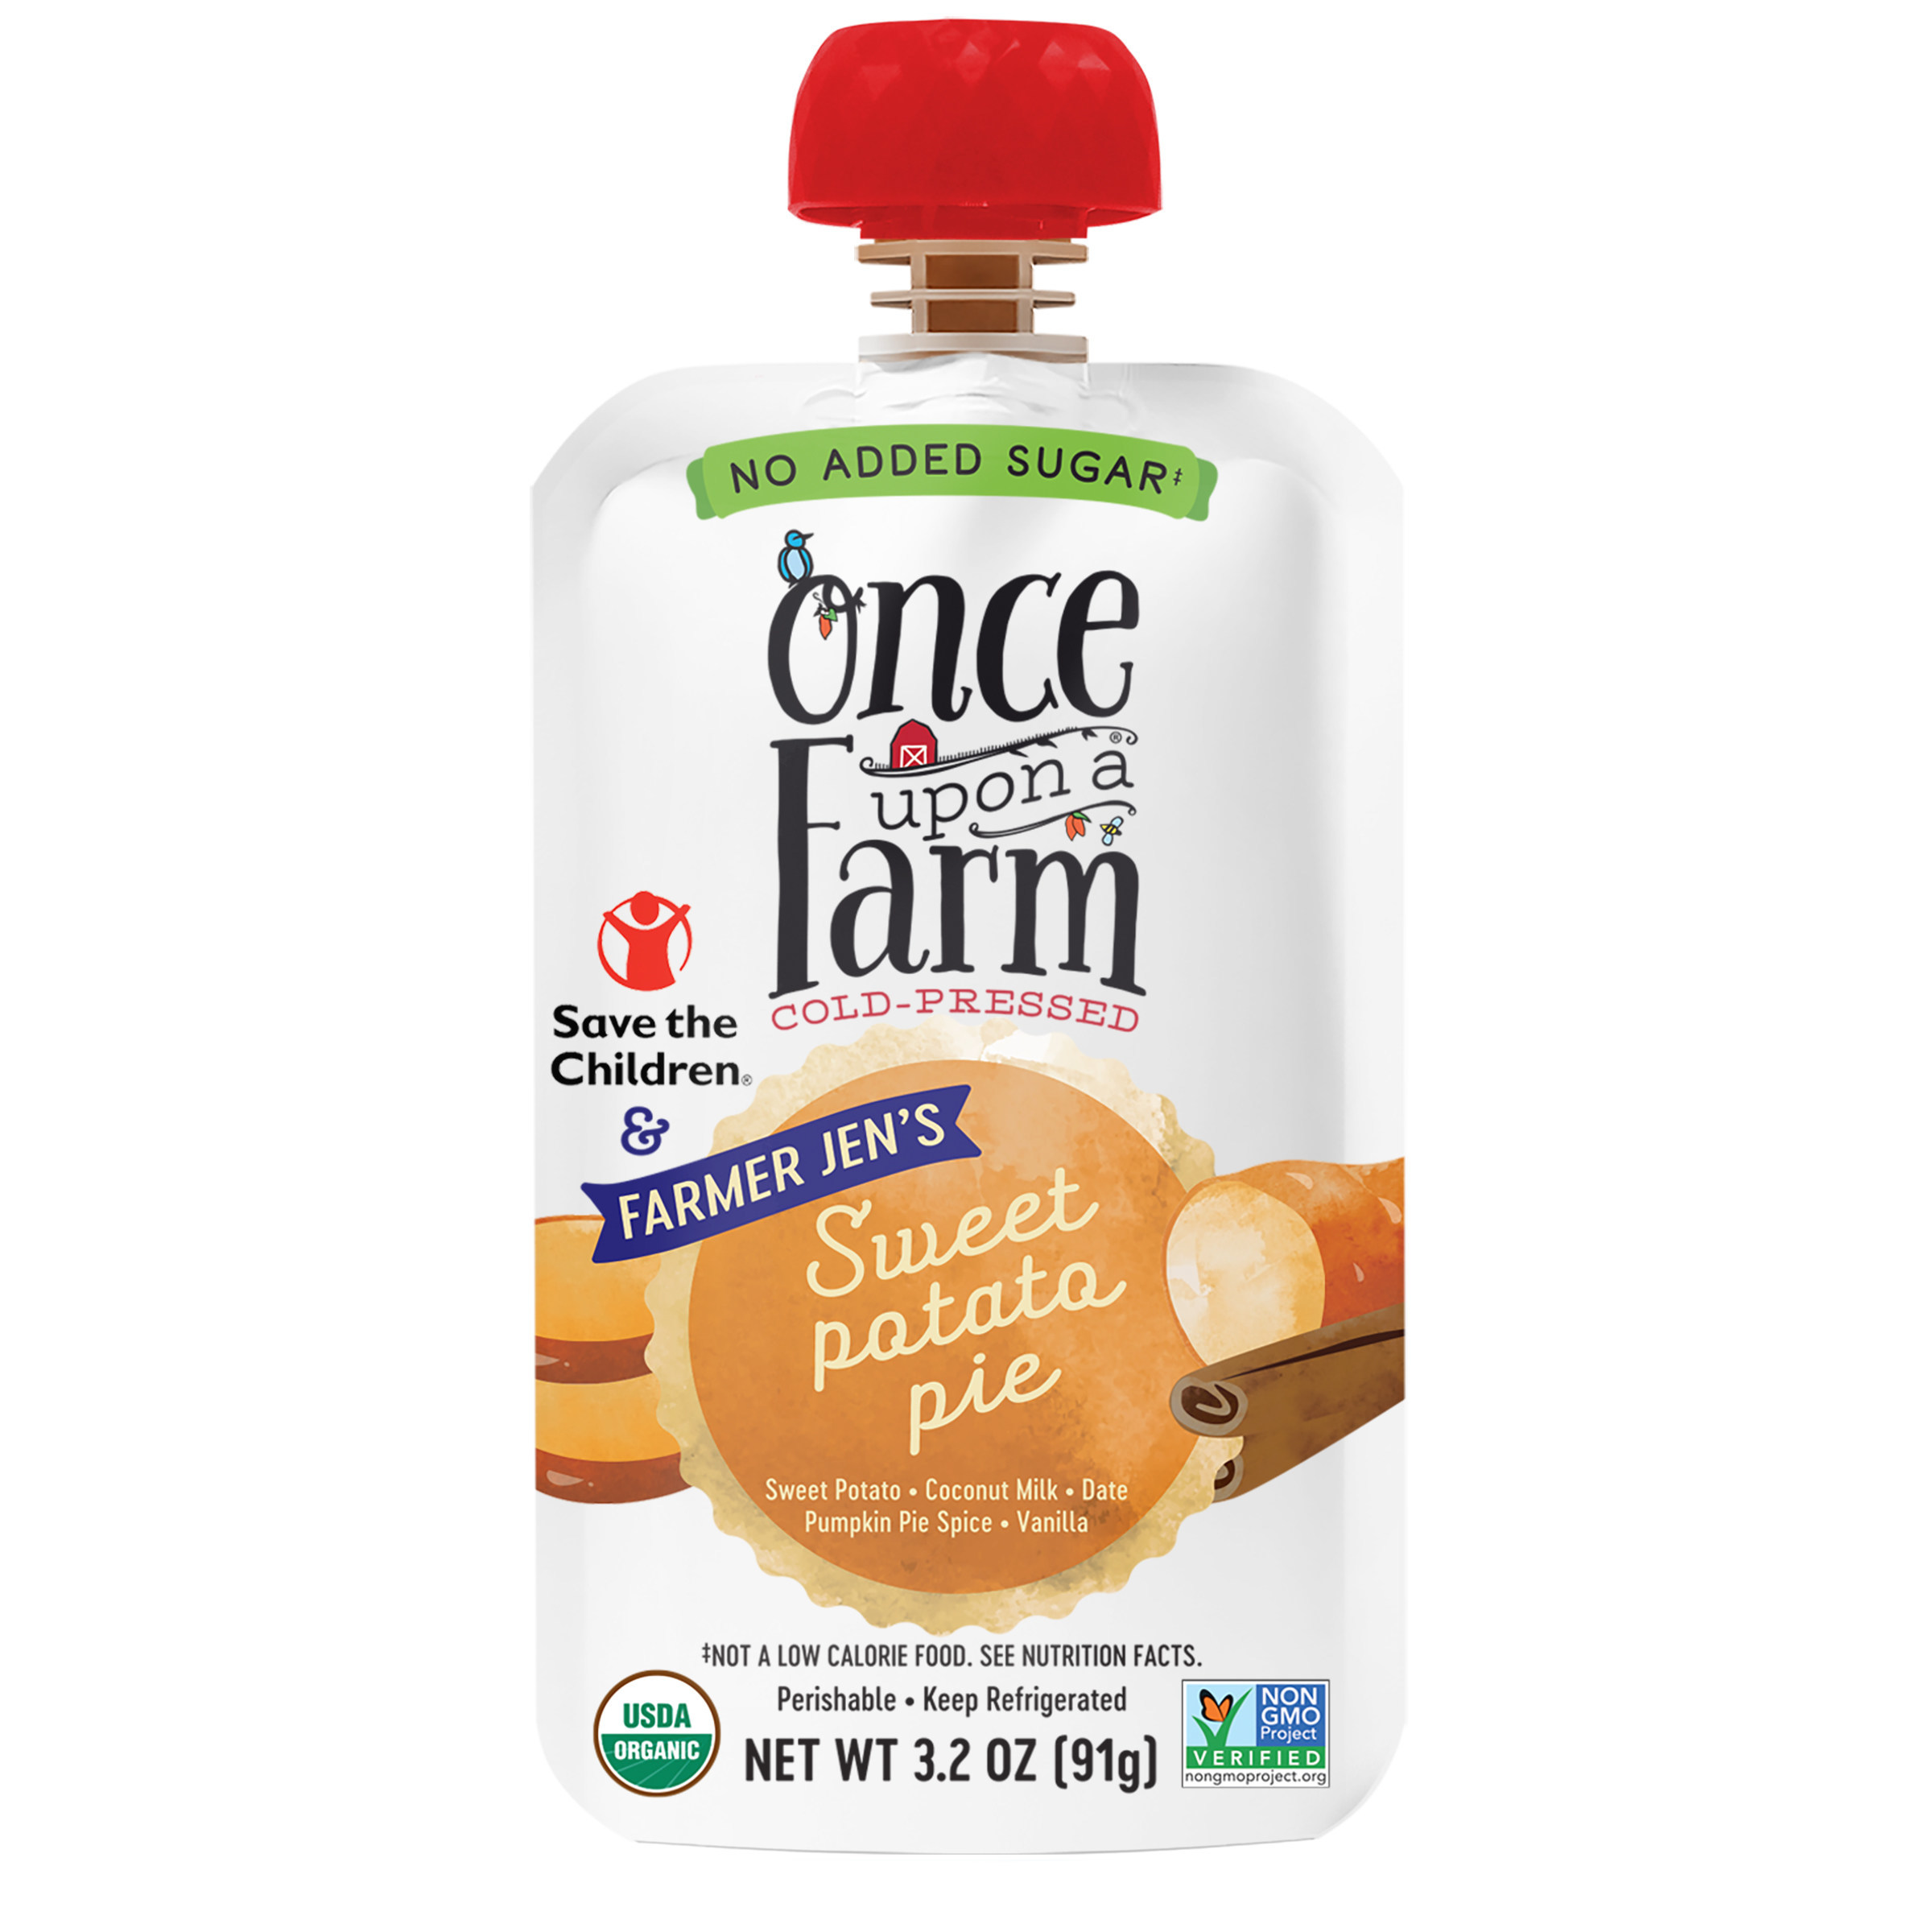 Once Upon A Farm Releases New Farmer Jen S Sweet Potato Pie Blend In Partnership With Save The Children